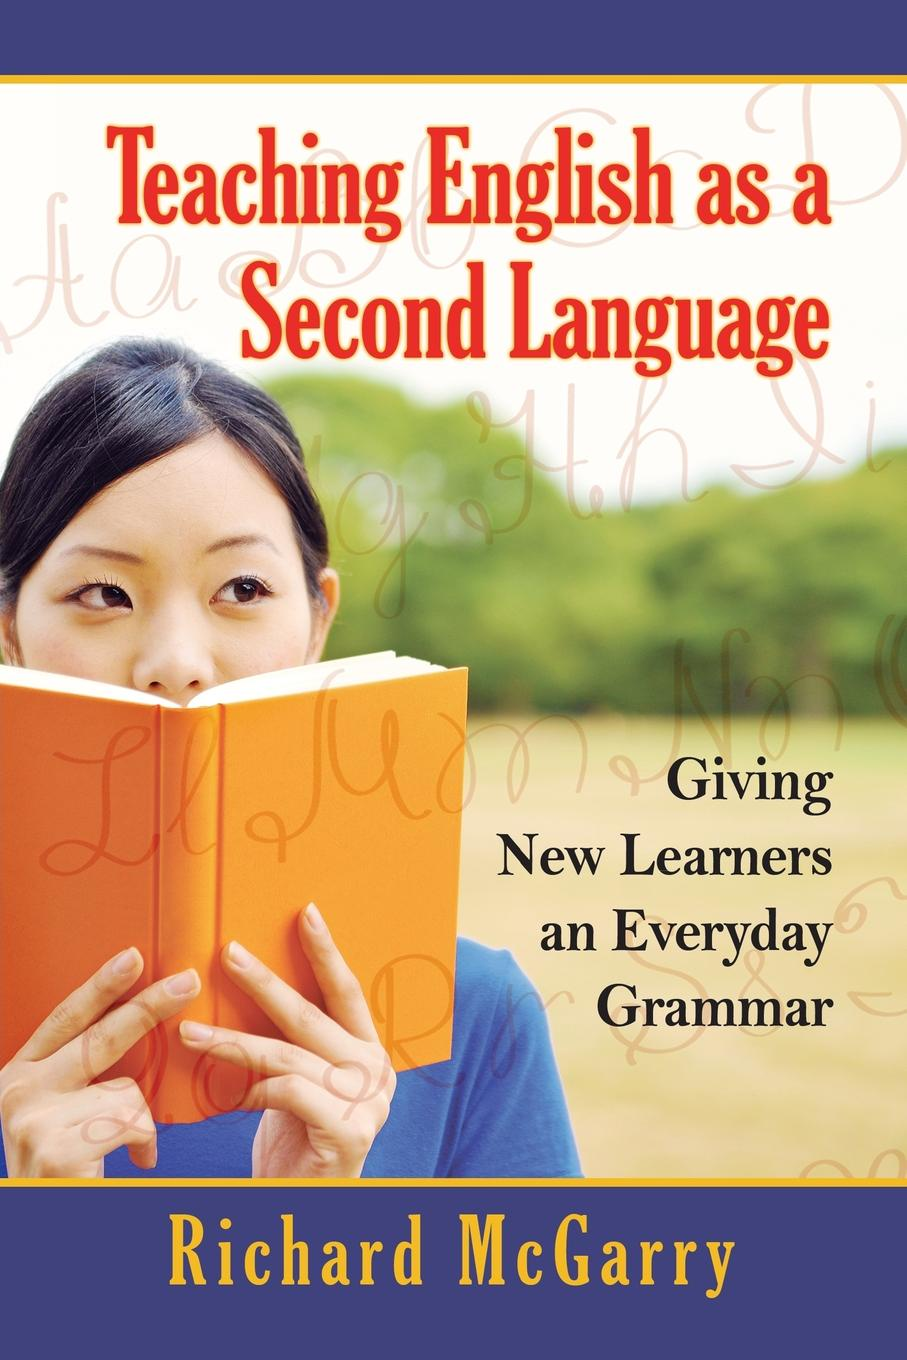 Richard McGarry. Teaching English as a Second Language. Giving New Learners an Everyday Grammar (Revised)